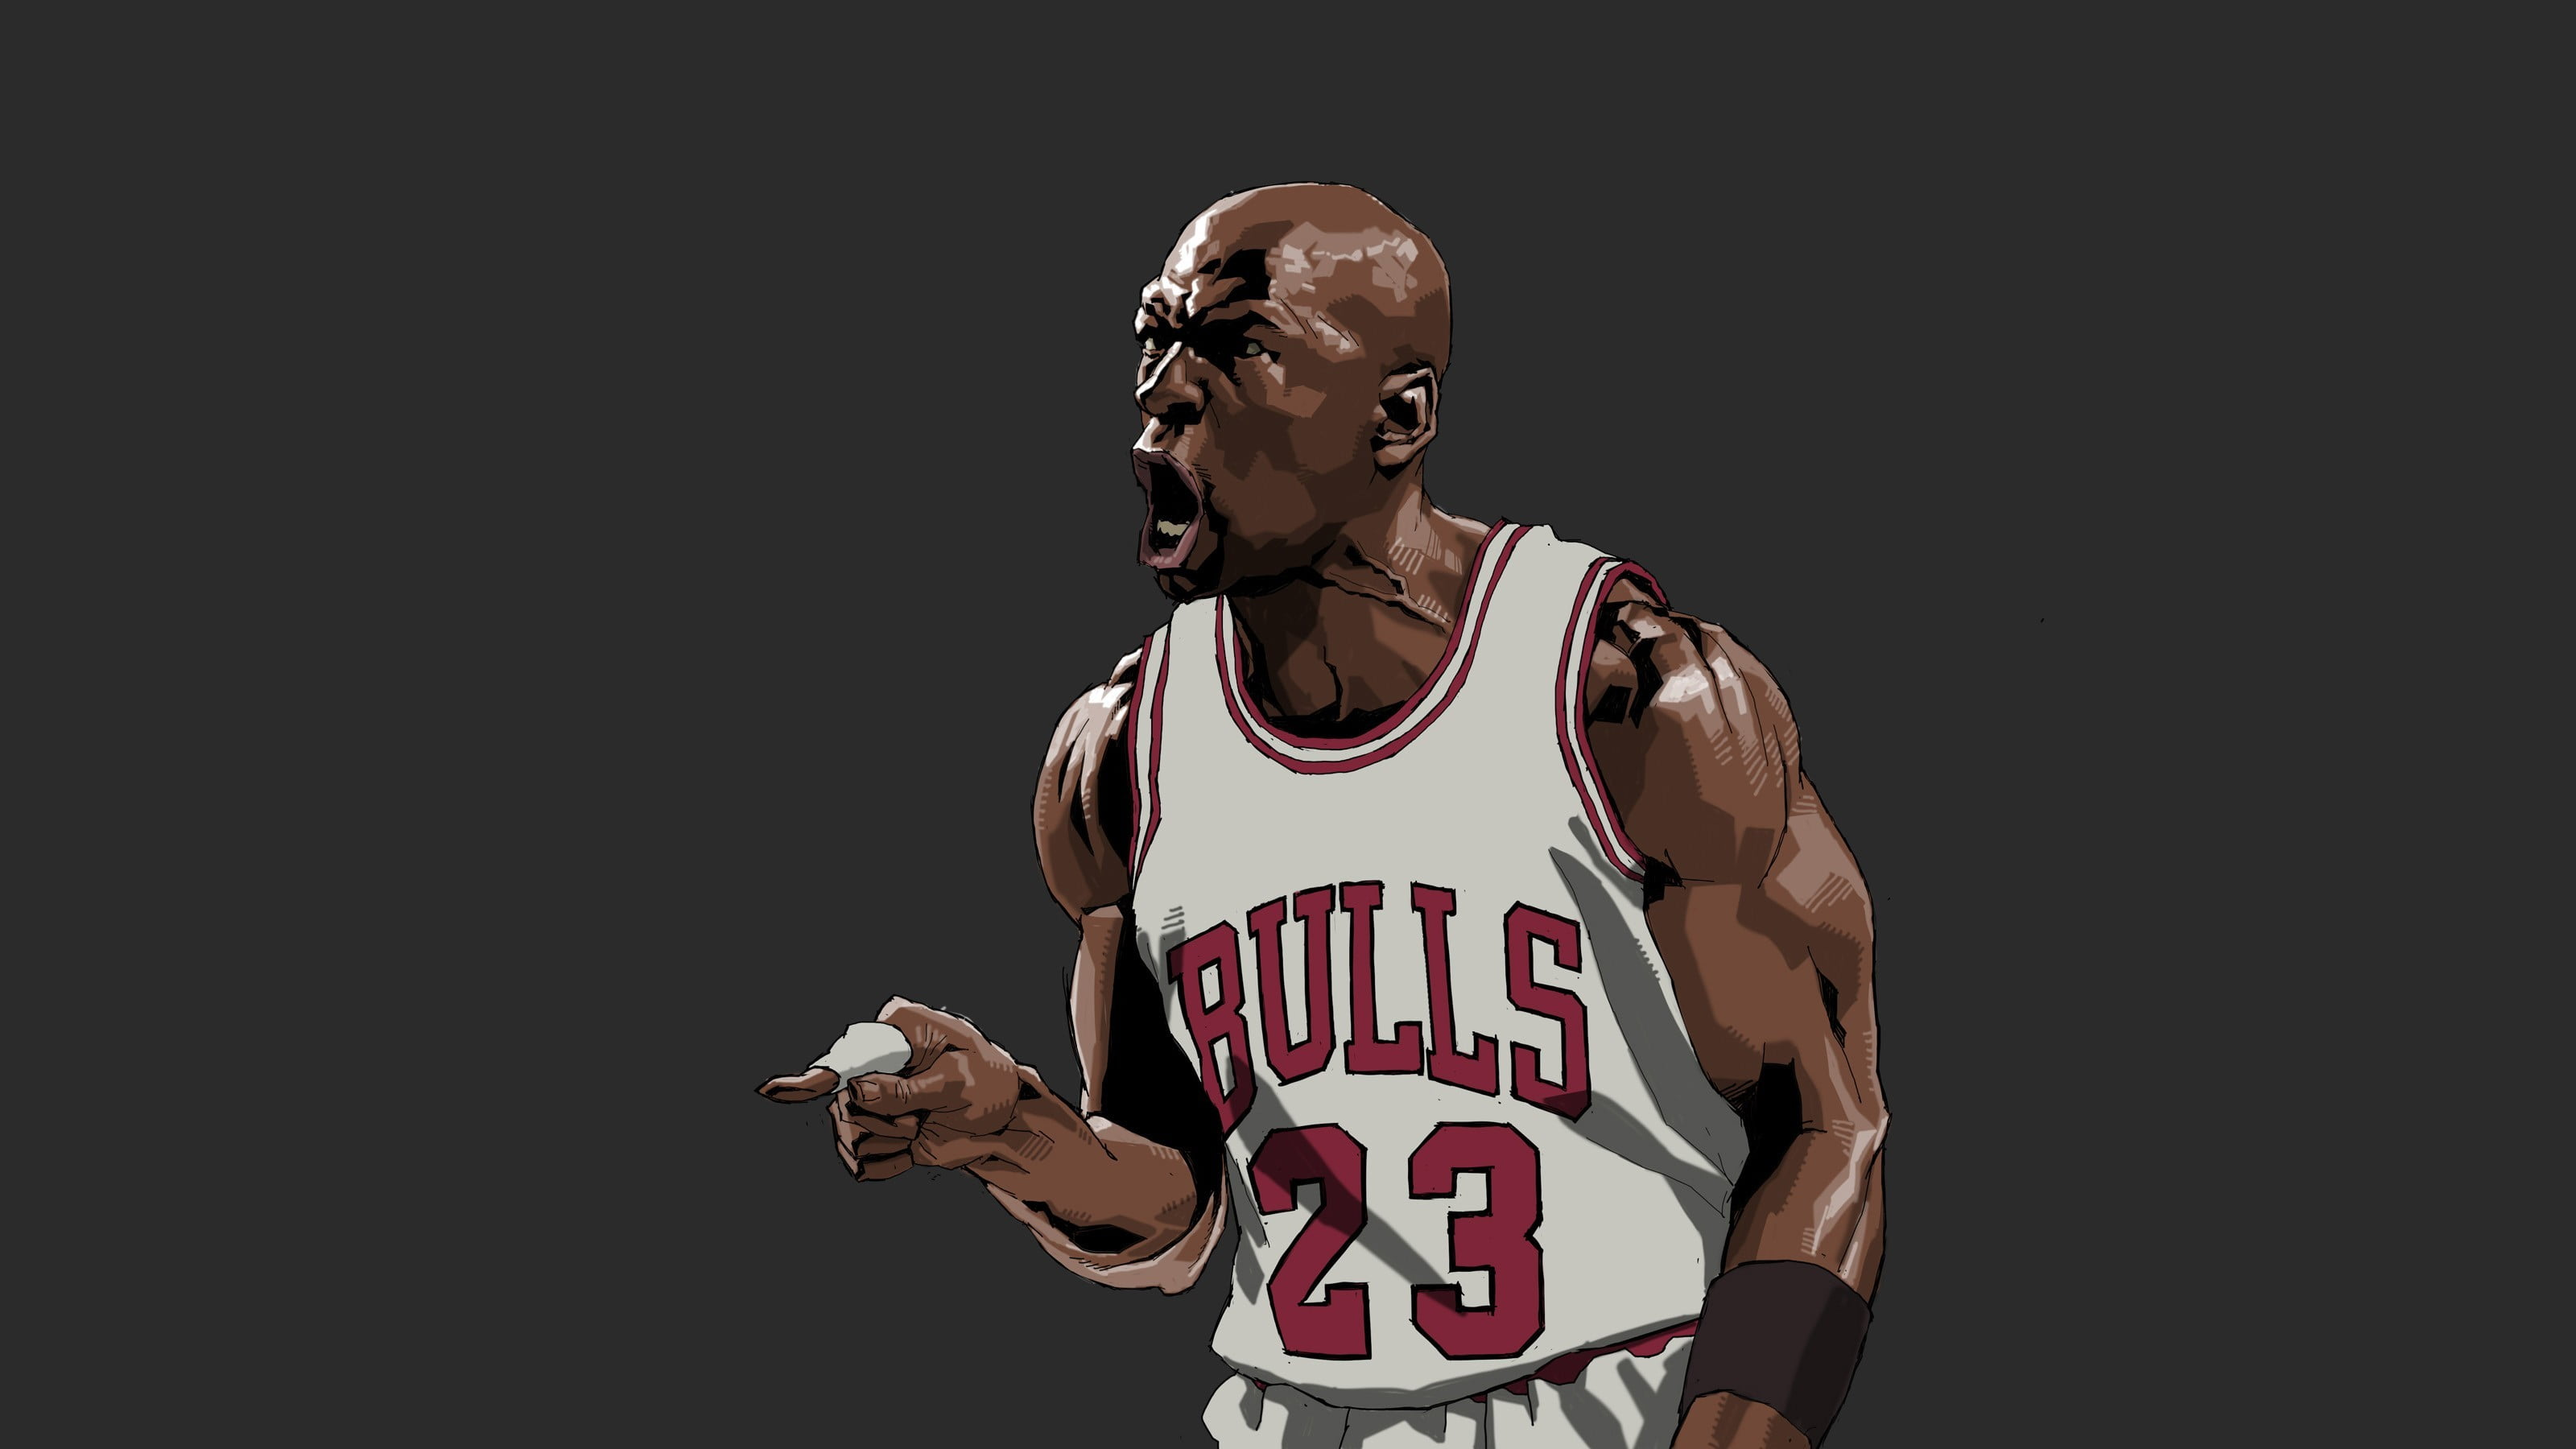 3200x1800 - Chicago Bulls HD 24